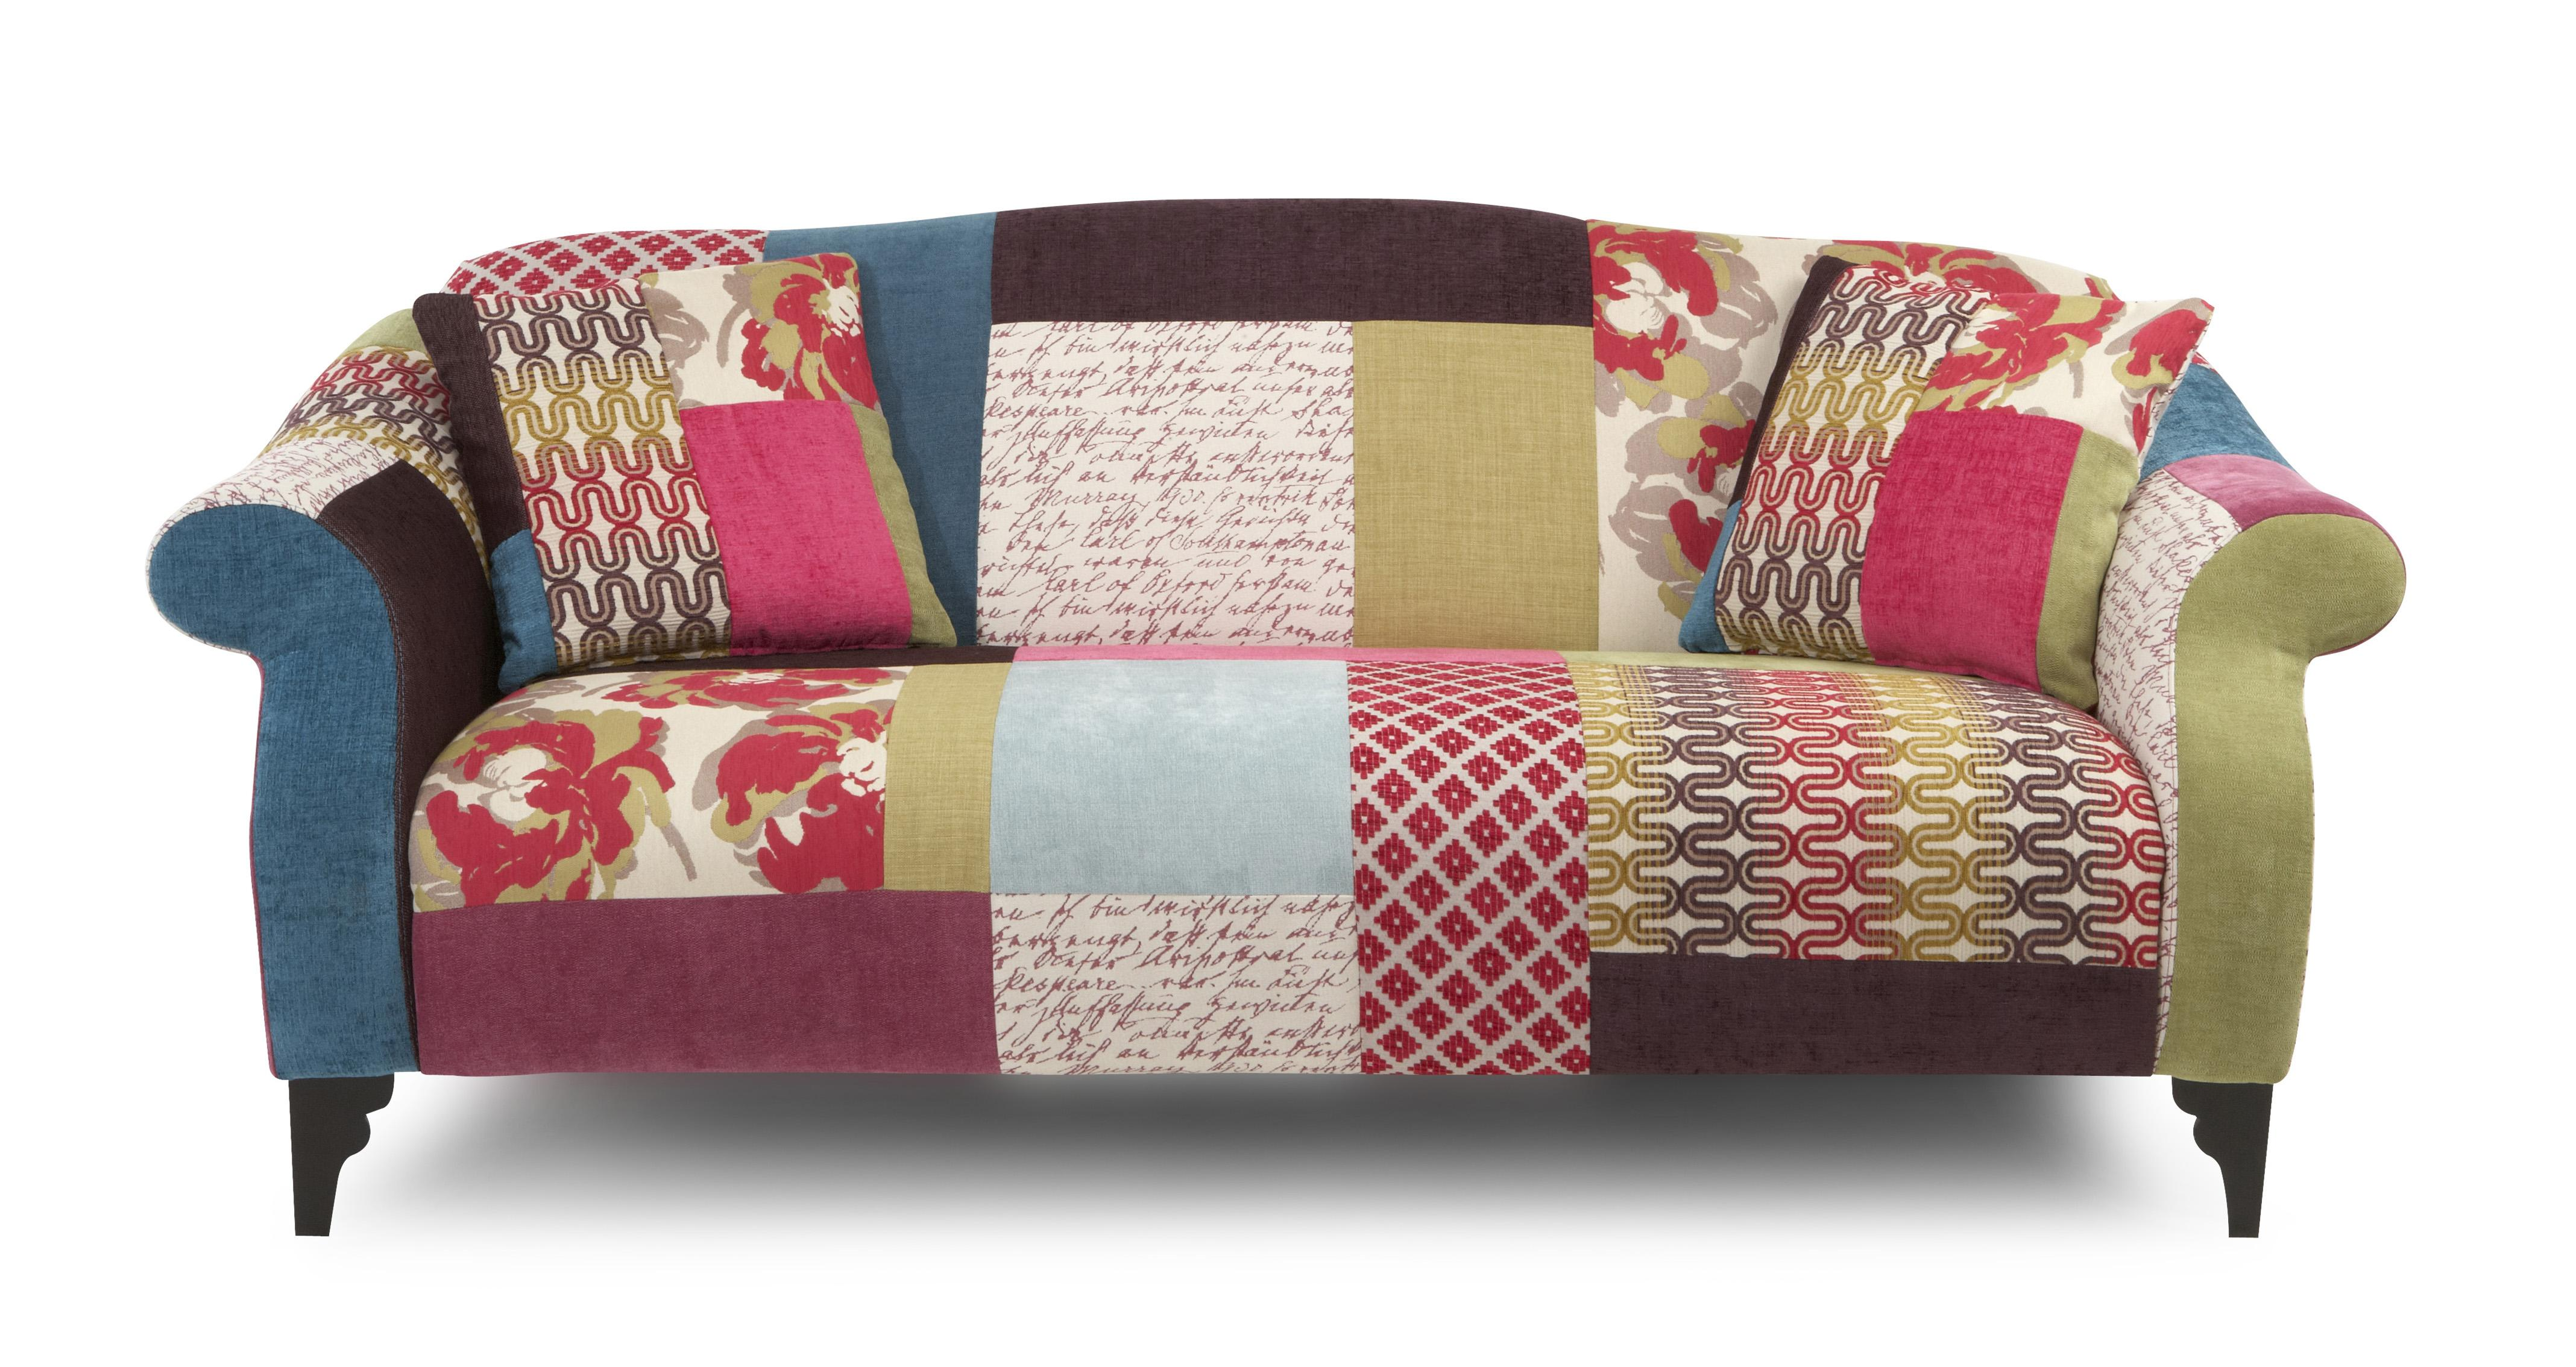 Patchwork Sofa Patchwork Sofa Patchwork Sofa English Chesterfields Patchwork